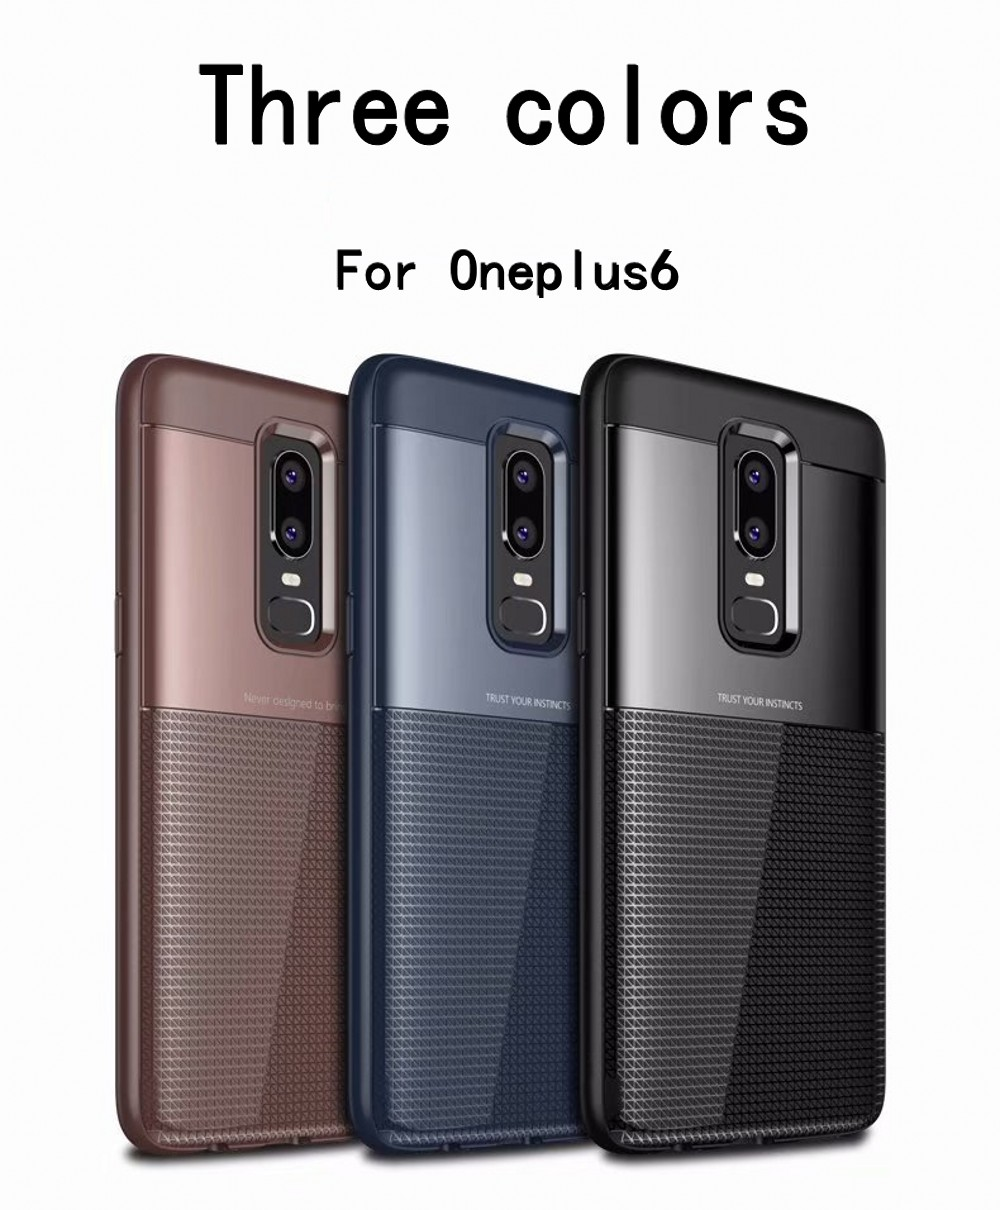 Spessn Carbon Fiber Cover Anti-Scratch Shockproof Skin Case for OnePlus 6 Shell 3 Color ON SALE 4